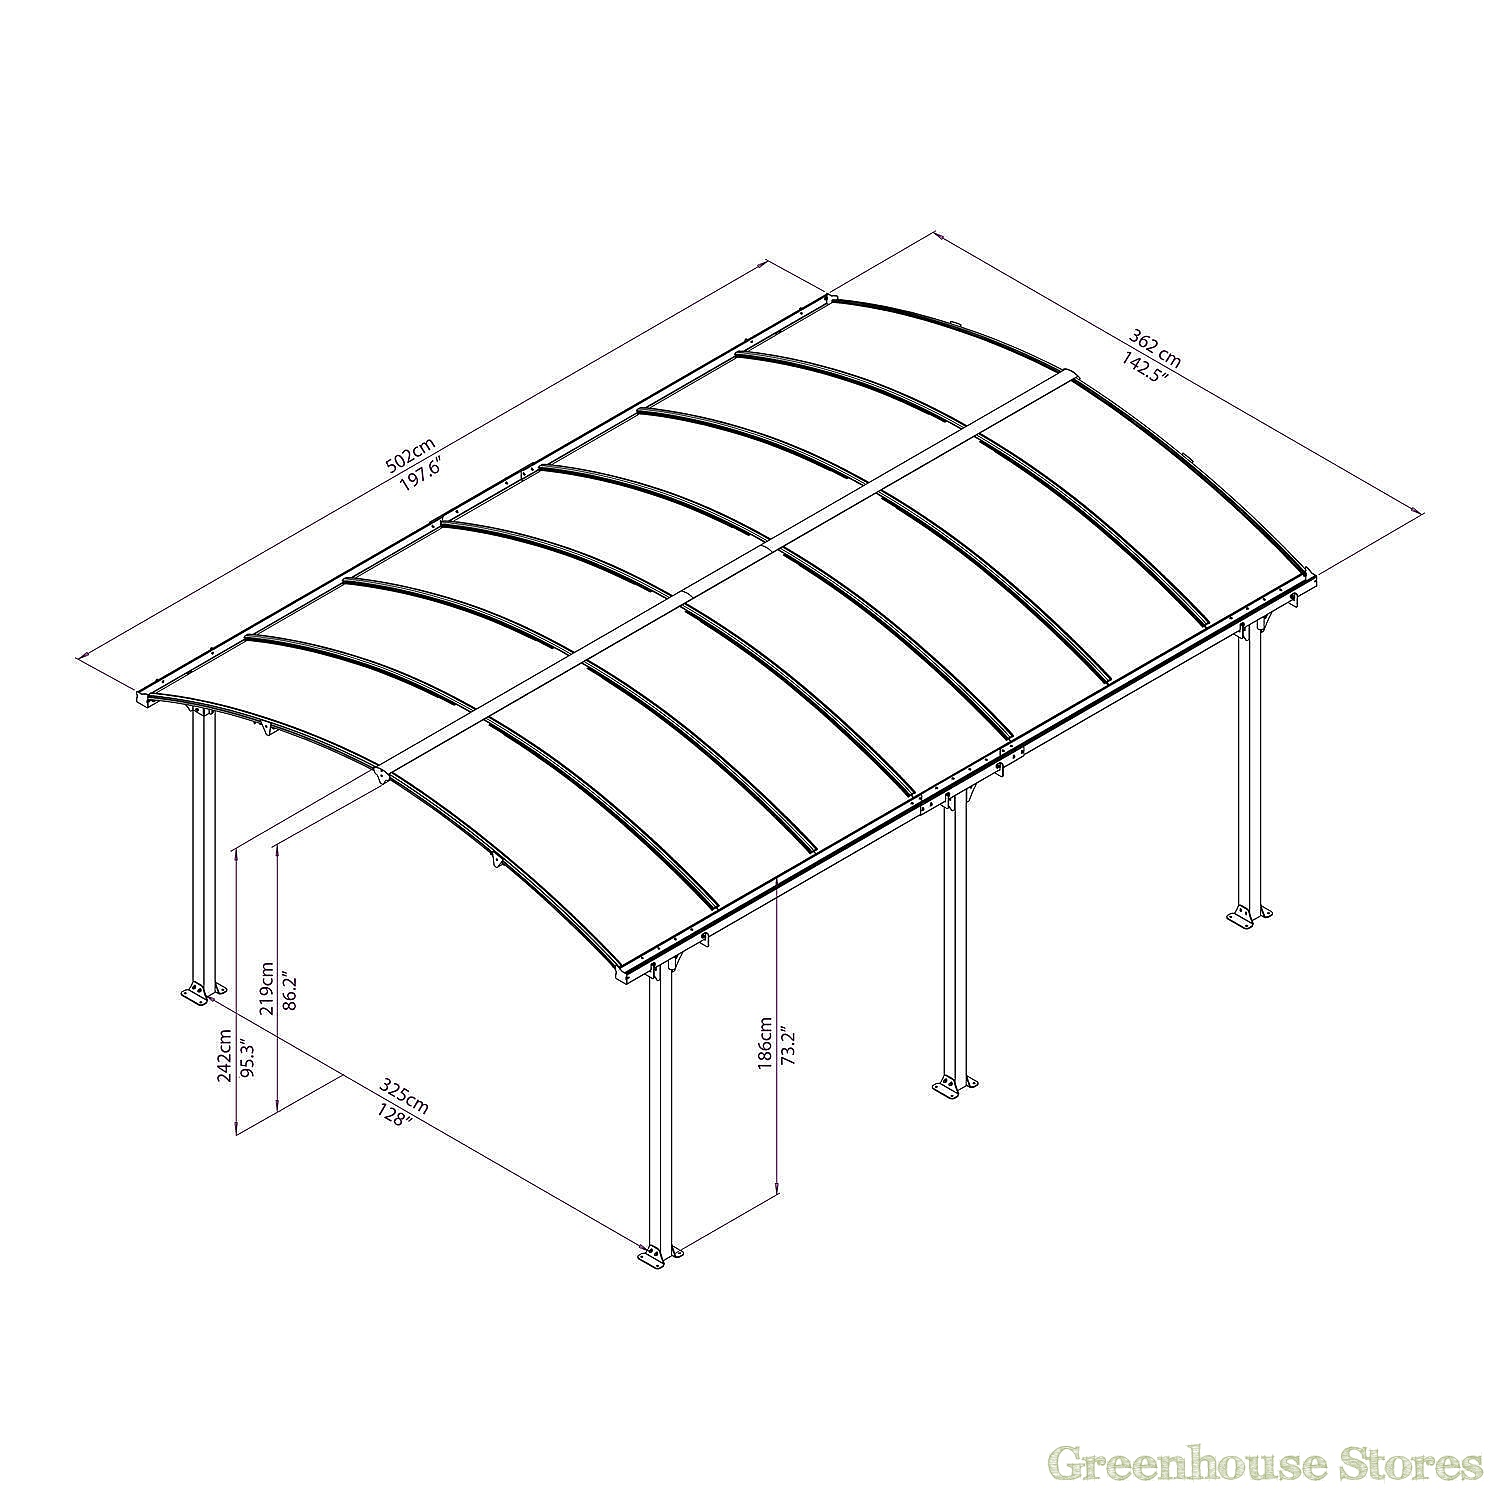 Palram arcadia 5000 carport greenhouse stores for Single car carport dimensions